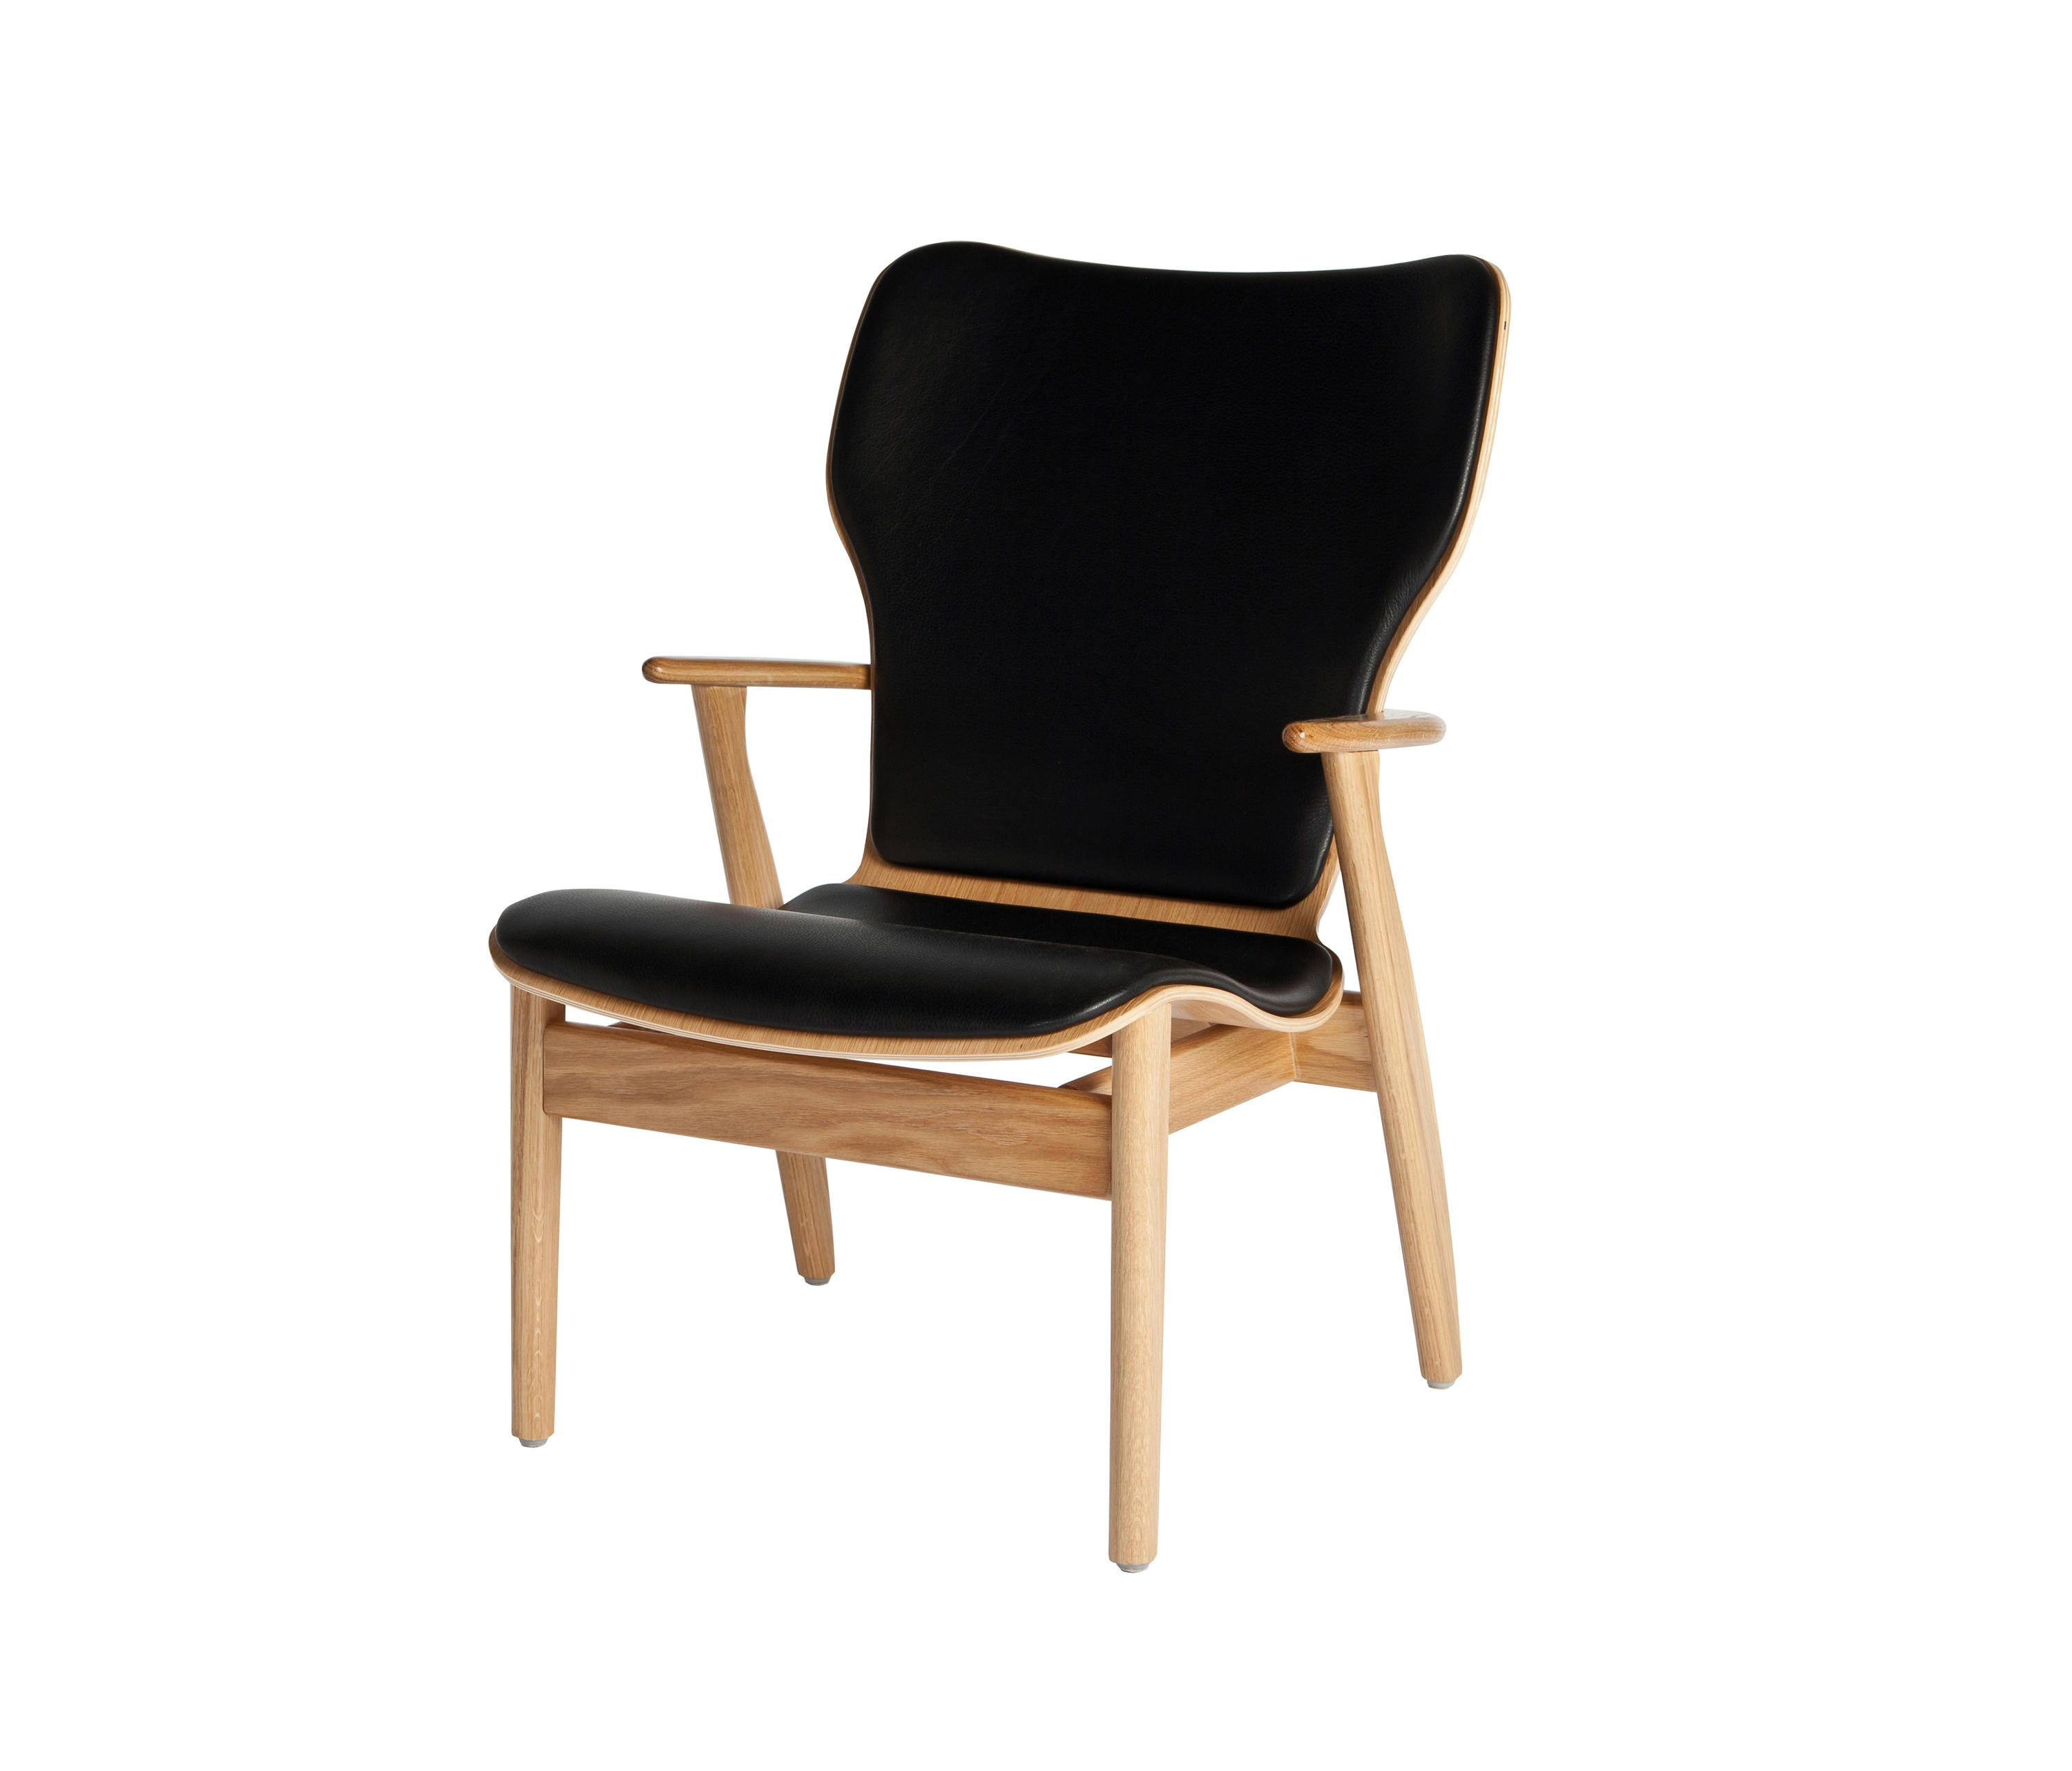 domus lounge chair fauteuils d 39 attente de artek architonic. Black Bedroom Furniture Sets. Home Design Ideas